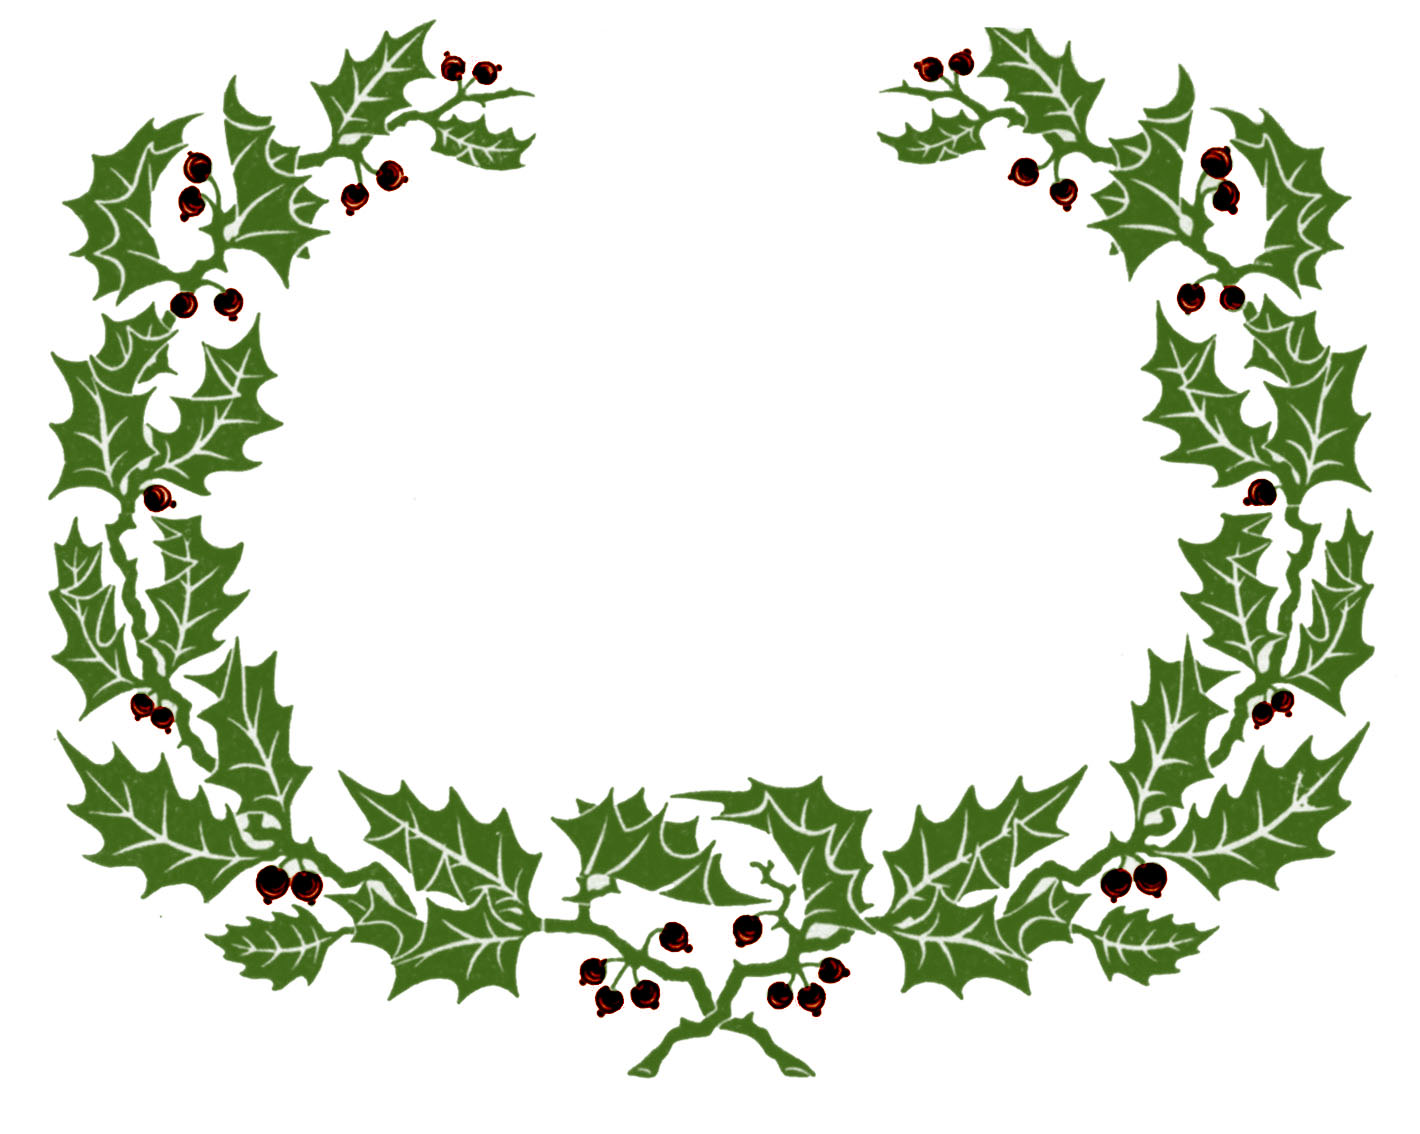 Vintage clip art holly wreath graphic frame the for Holl image